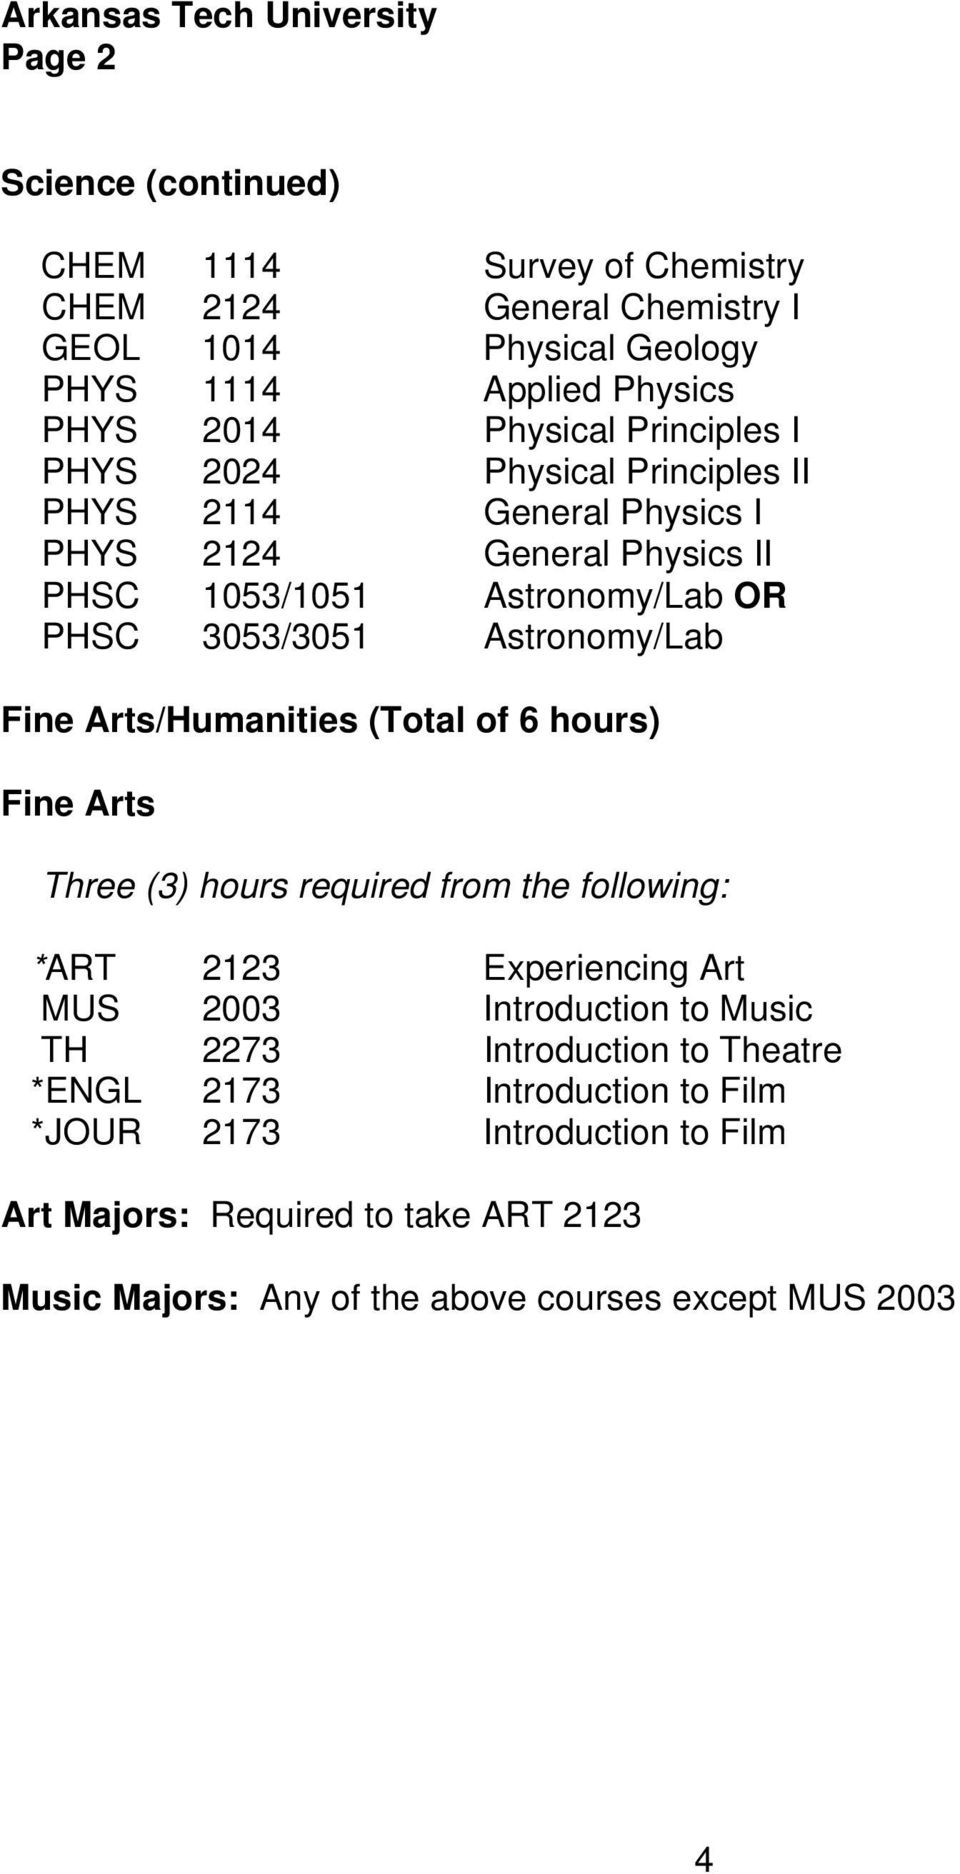 PHSC 3053/3051 Astronomy/Lab Fine Arts/Humanities (Total of 6 hours) Fine Arts *ART 2123 Experiencing Art MUS 2003 Introduction to Music TH 2273 Introduction to